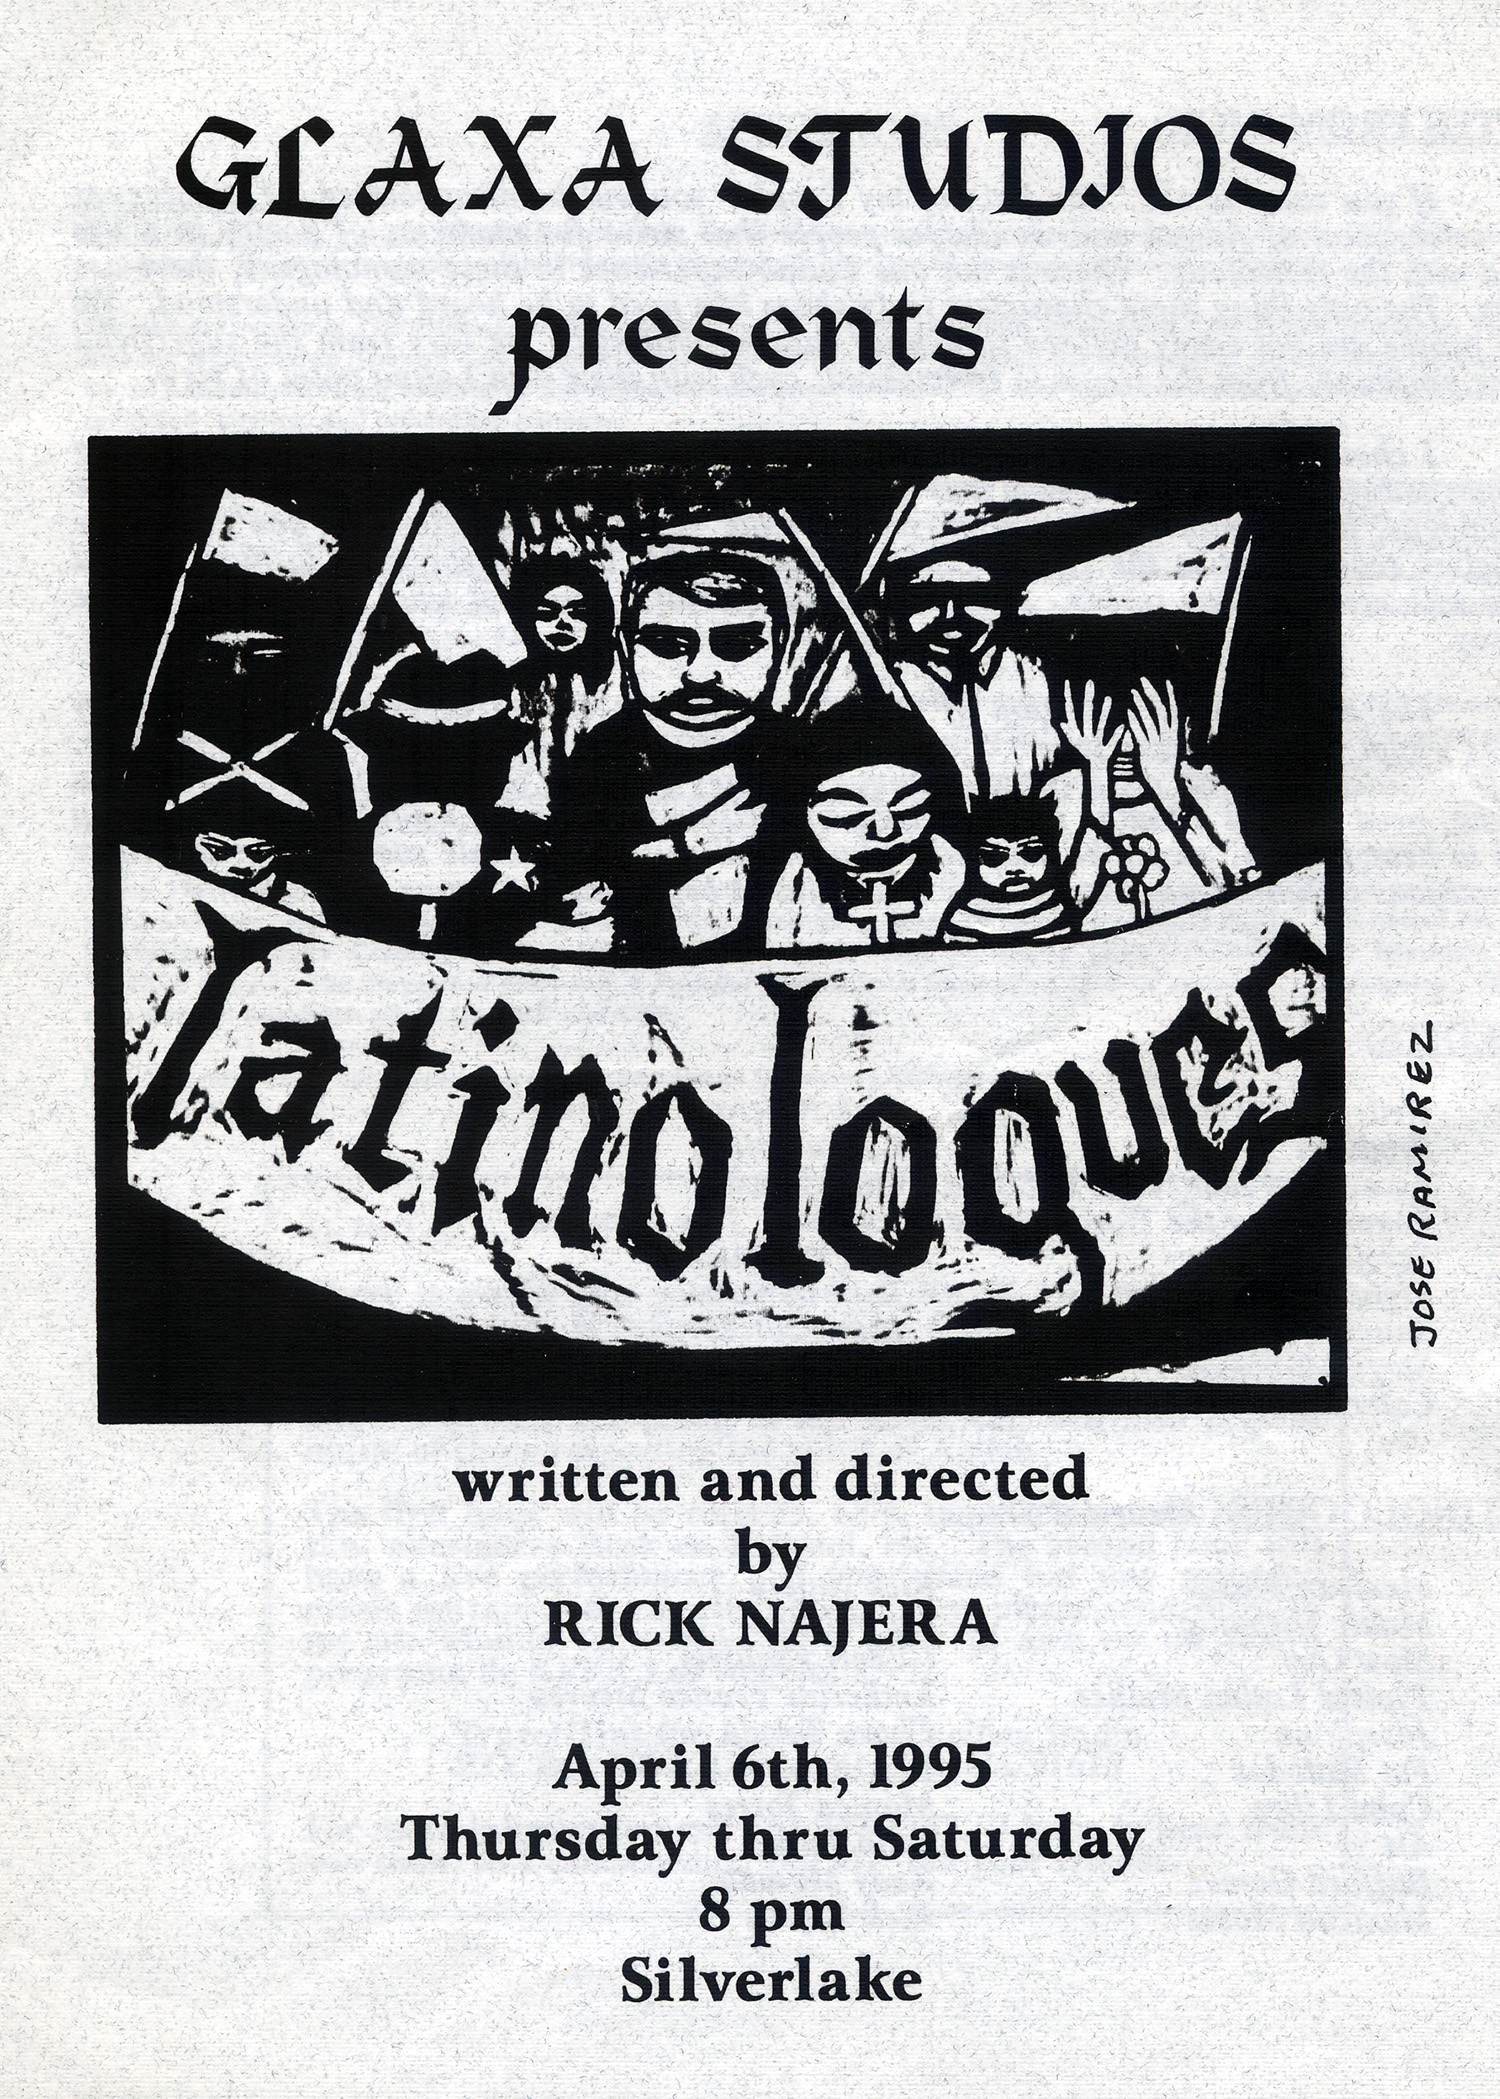 Artwork for first production of Latinologues, Glaxa Studios, Los Angeles, 1995.